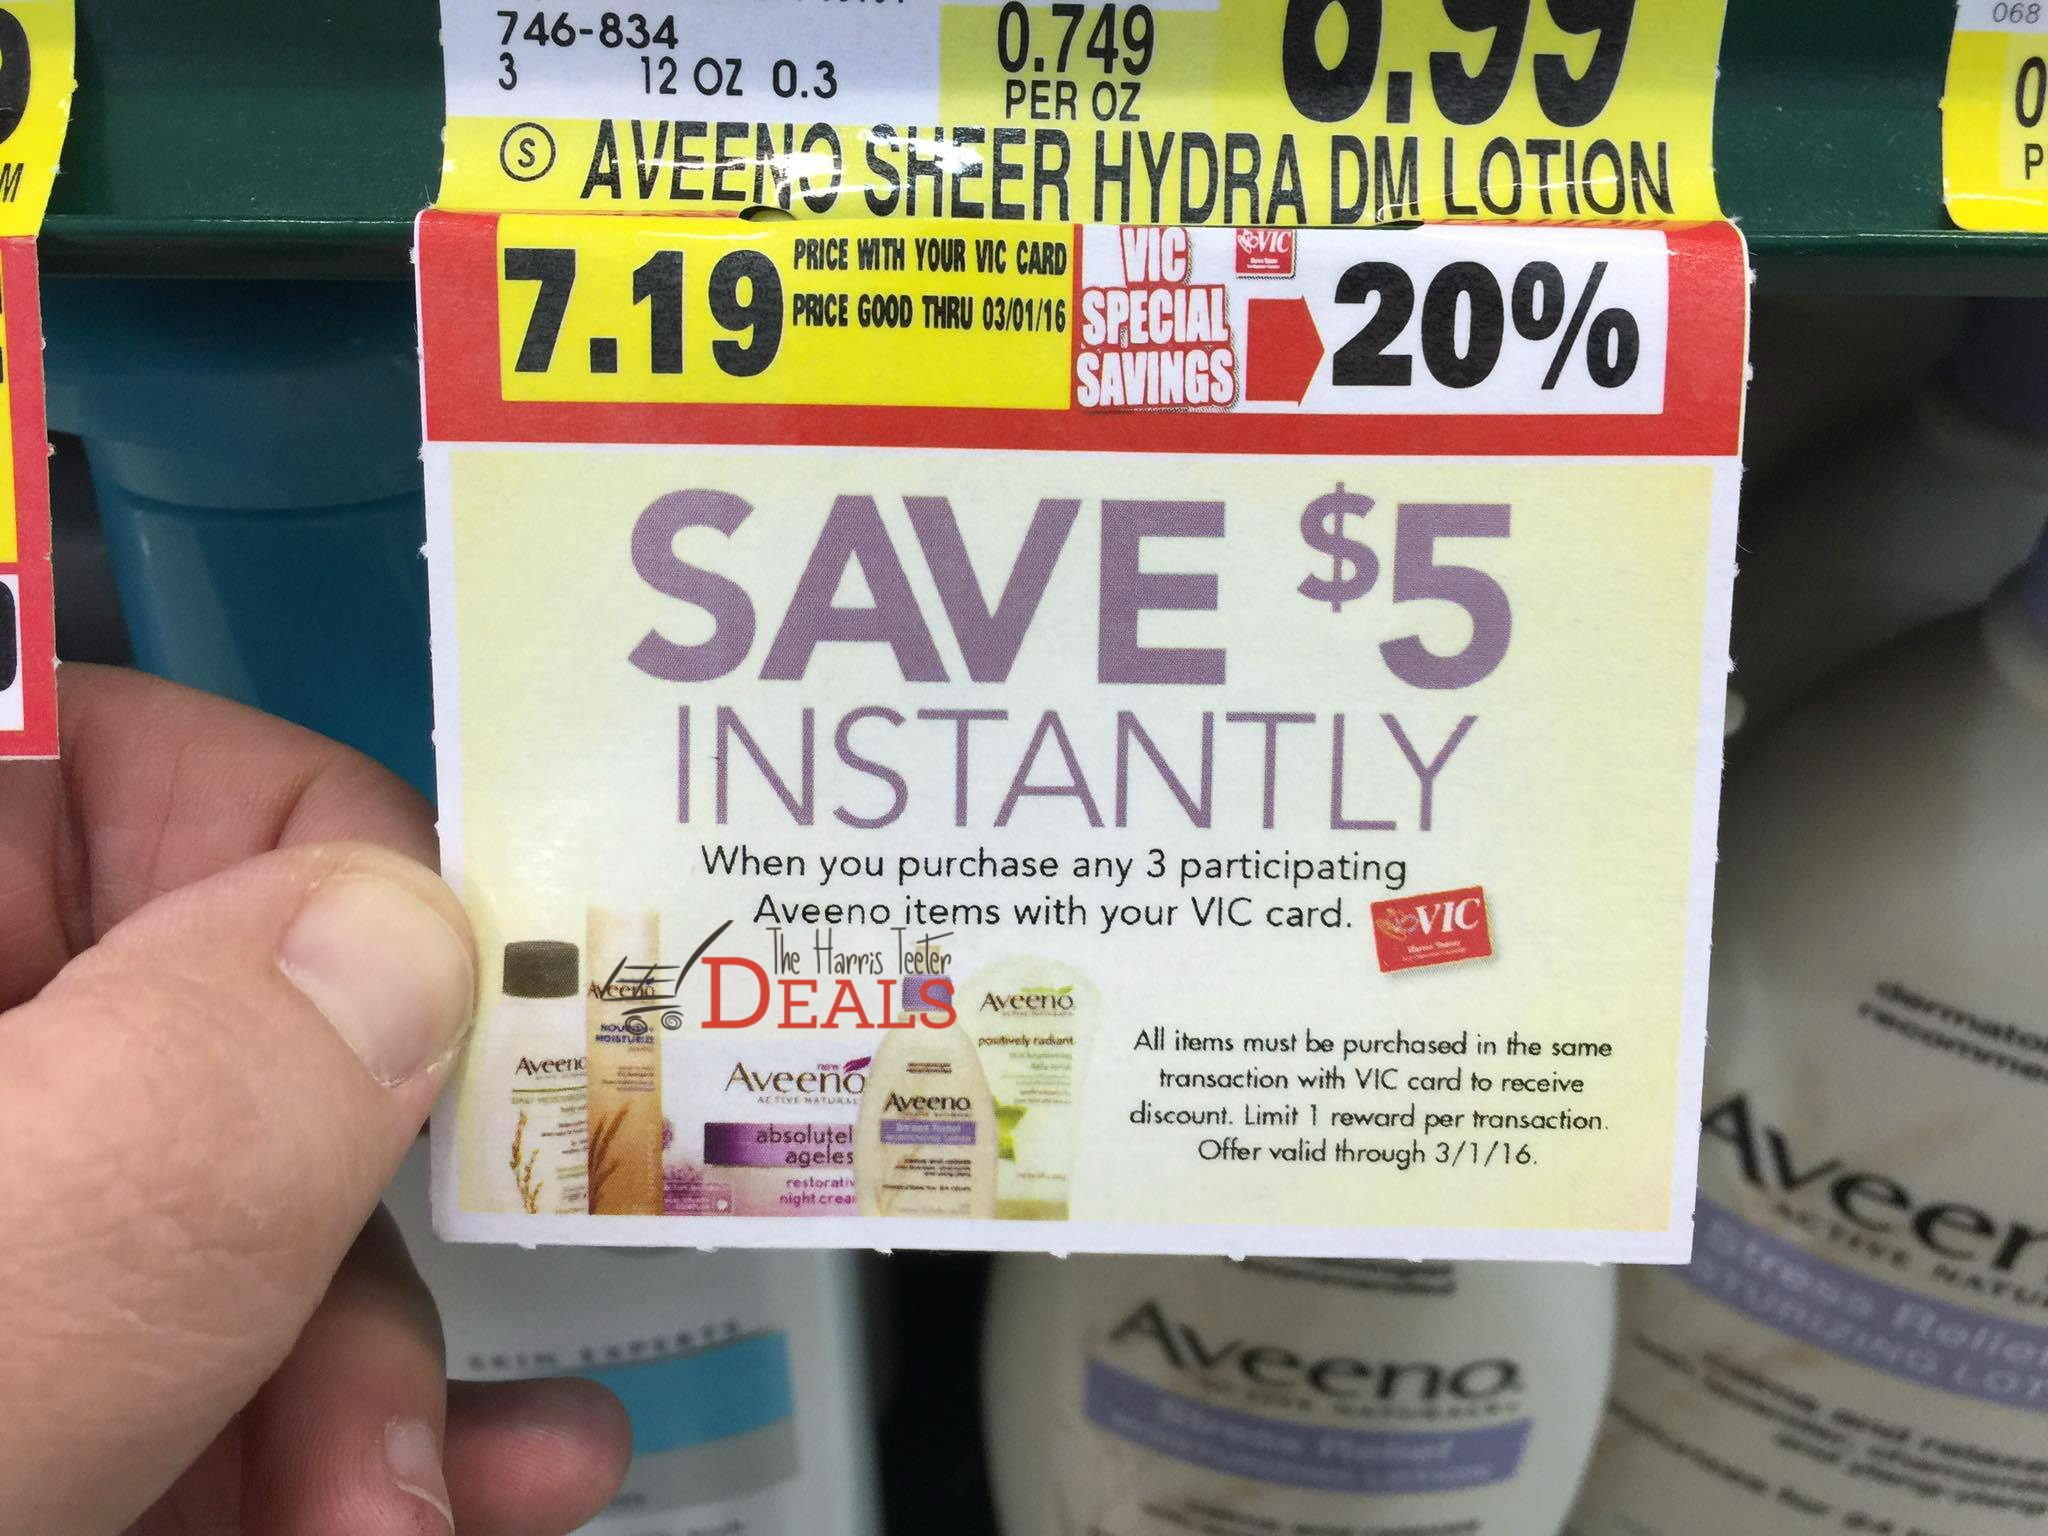 Aveeno Promotion at Harris Teeter Buy 3 save $5! - The Harris Teeter Deals